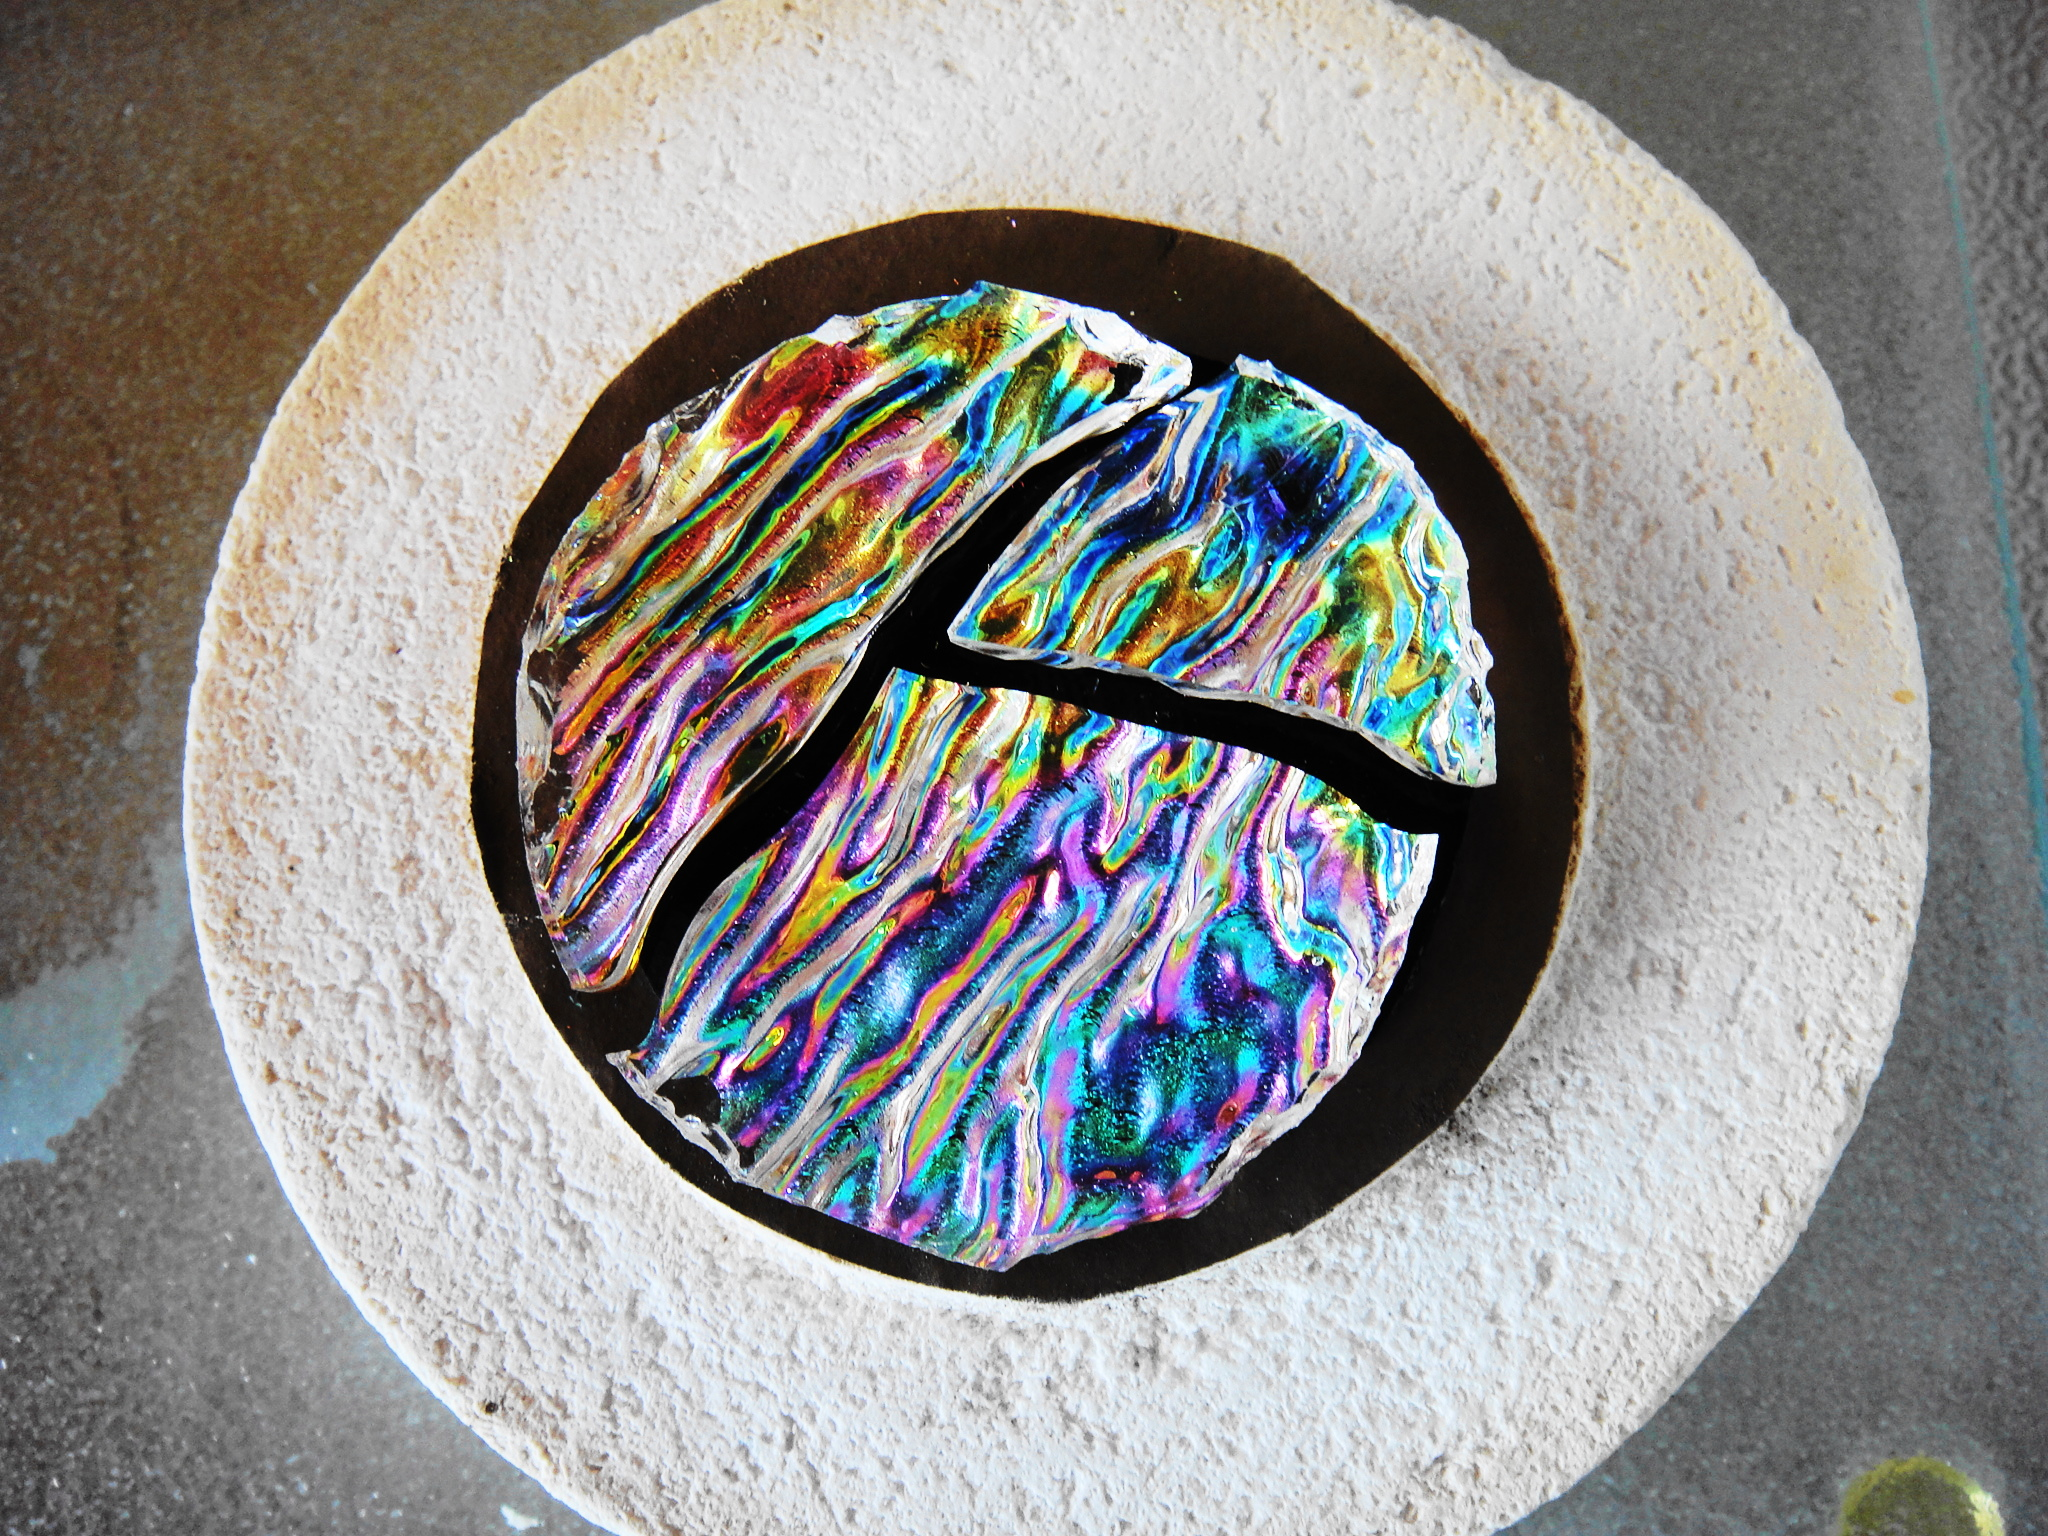 More Stuff That Happens When Making Dichroic Fused Glass